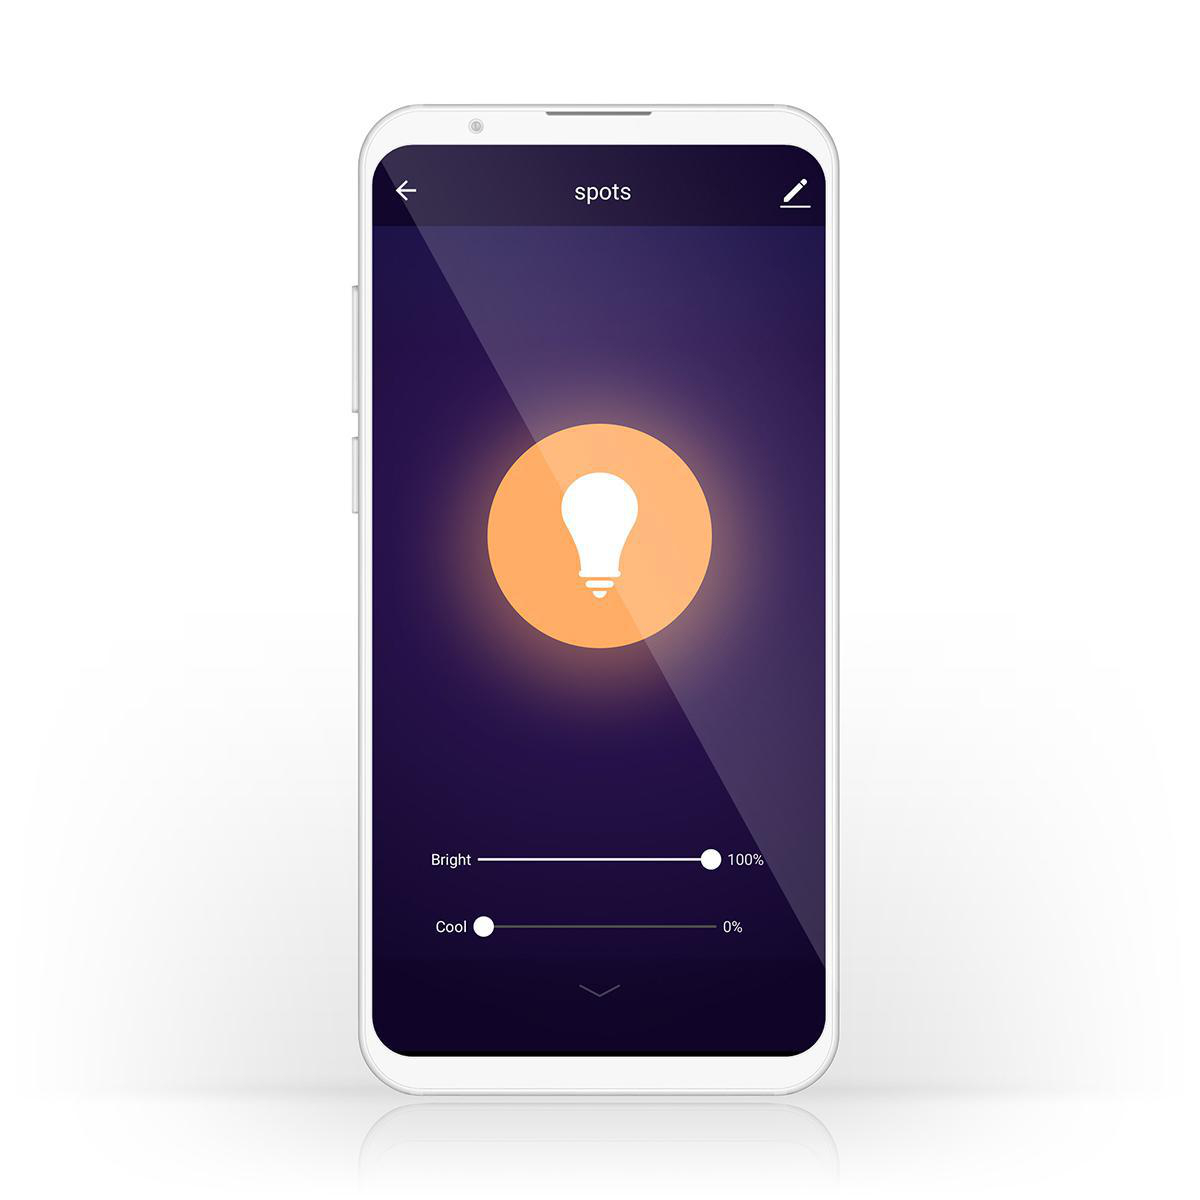 Slimme Led Edison Lamp met wifi E27 fitting 1800K - 6500K - bediening app